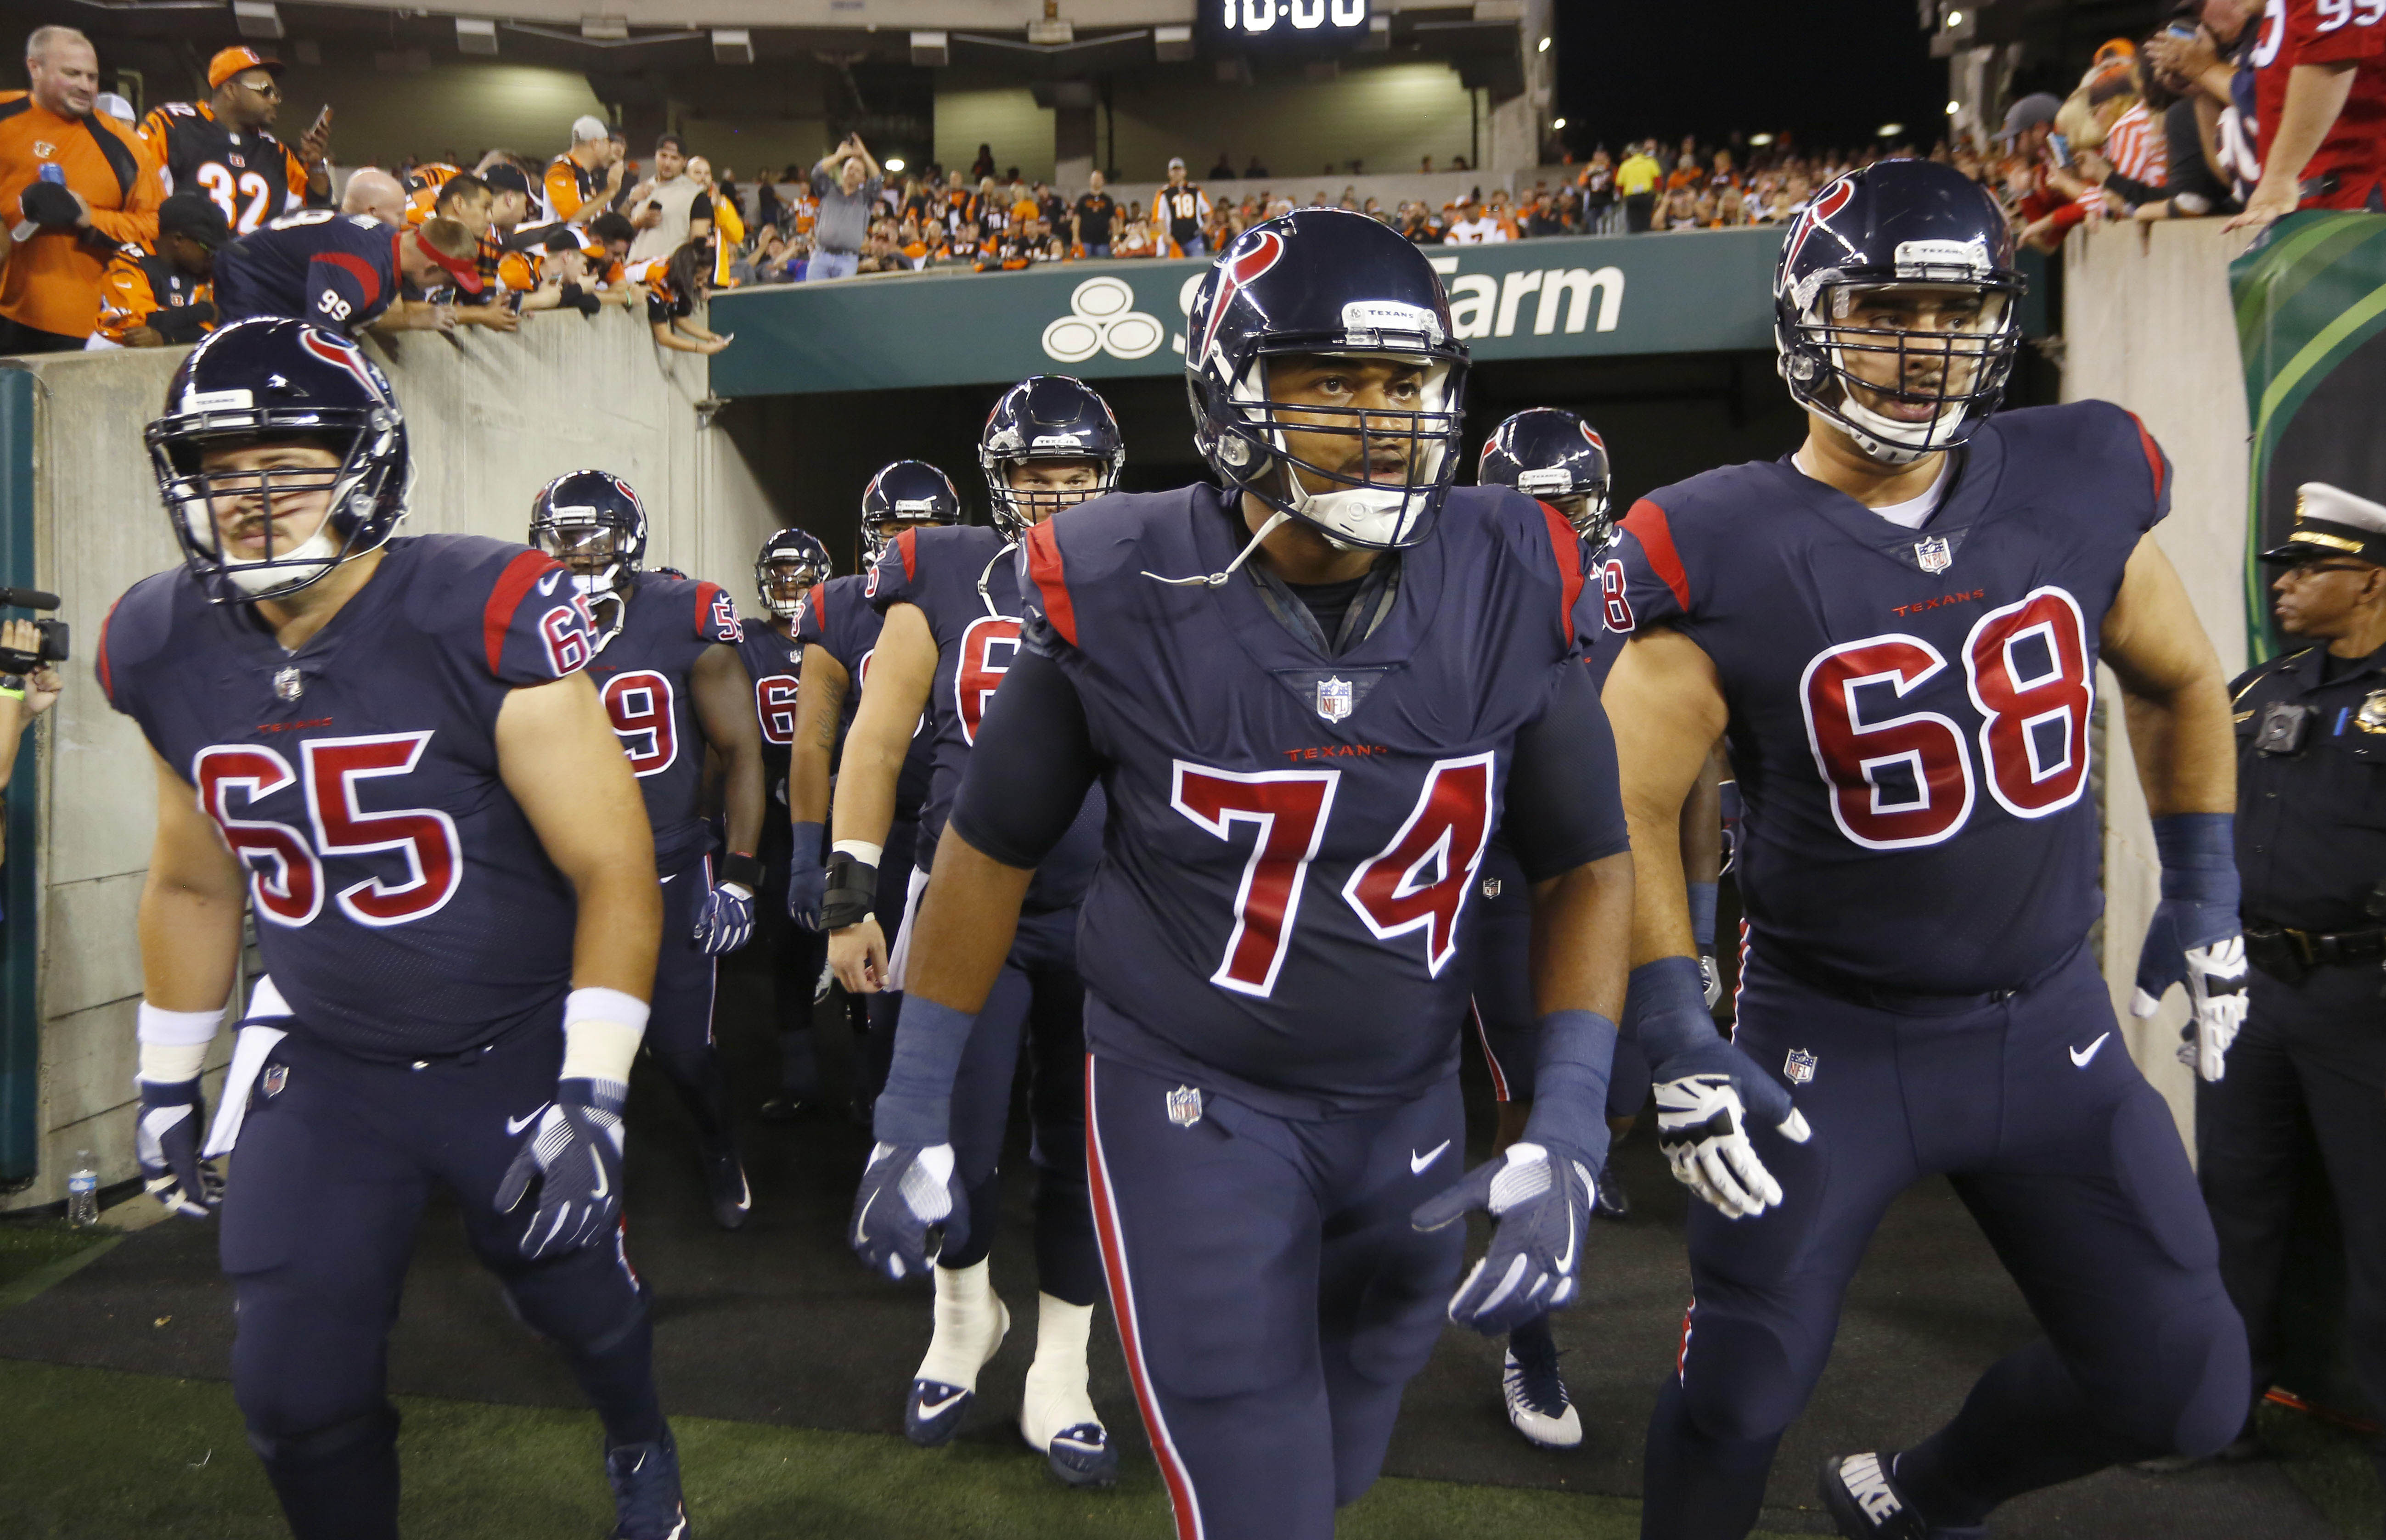 Sep 14, 2017; Cincinnati, OH, USA; The Houston Texans run on the field at the beginning of a game against the Cincinnati Bengals at Paul Brown Stadium. Mandatory Credit: David Kohl-USA TODAY Sports